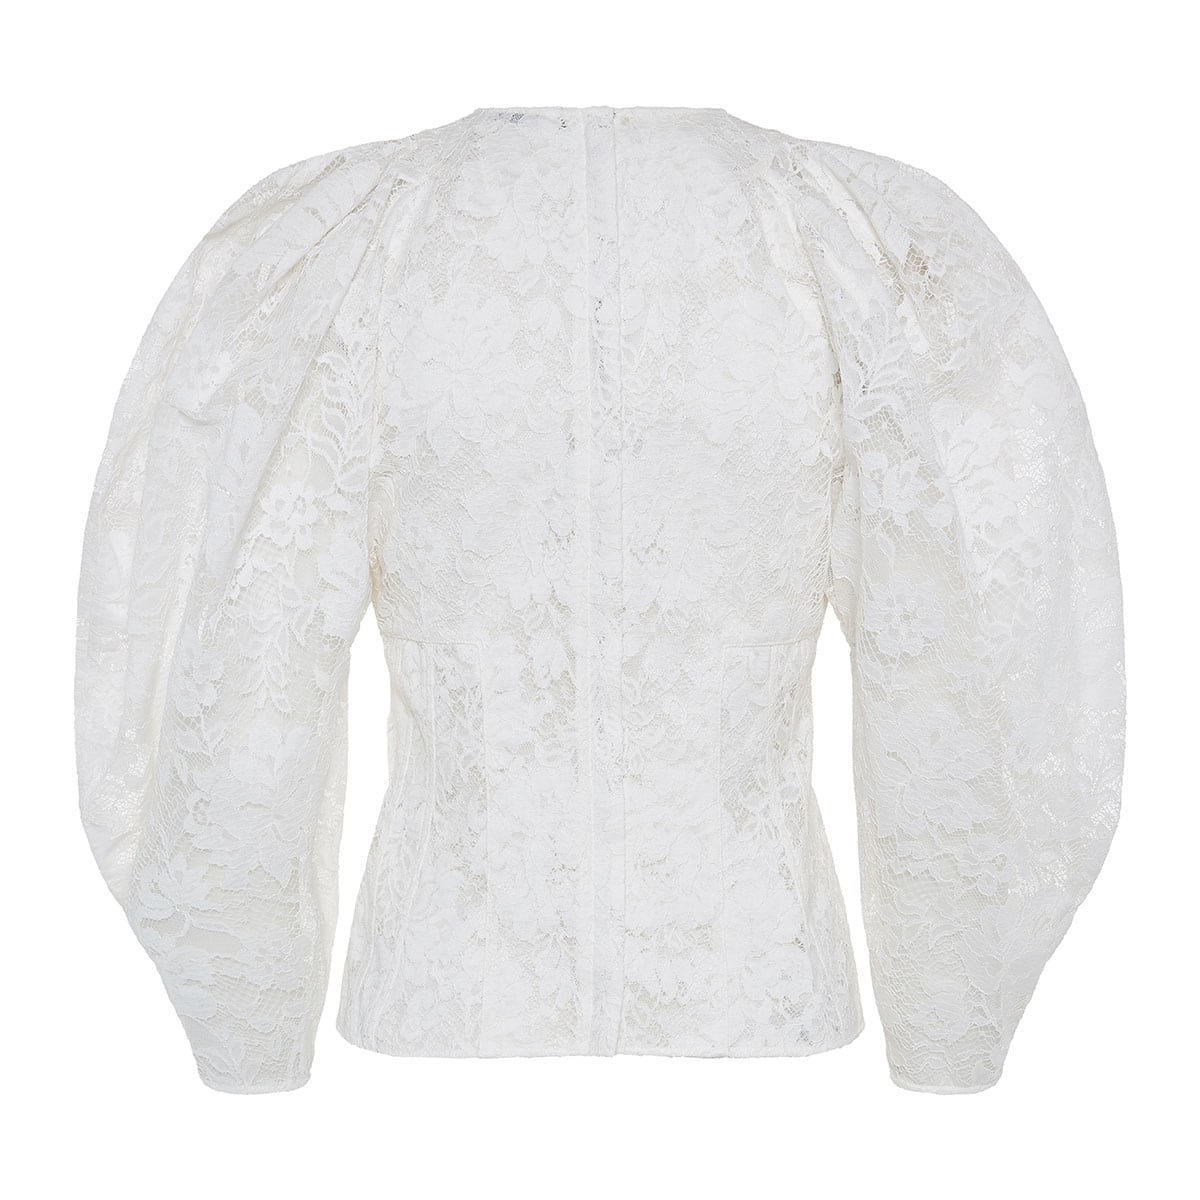 Puff-sleeved lace blouse